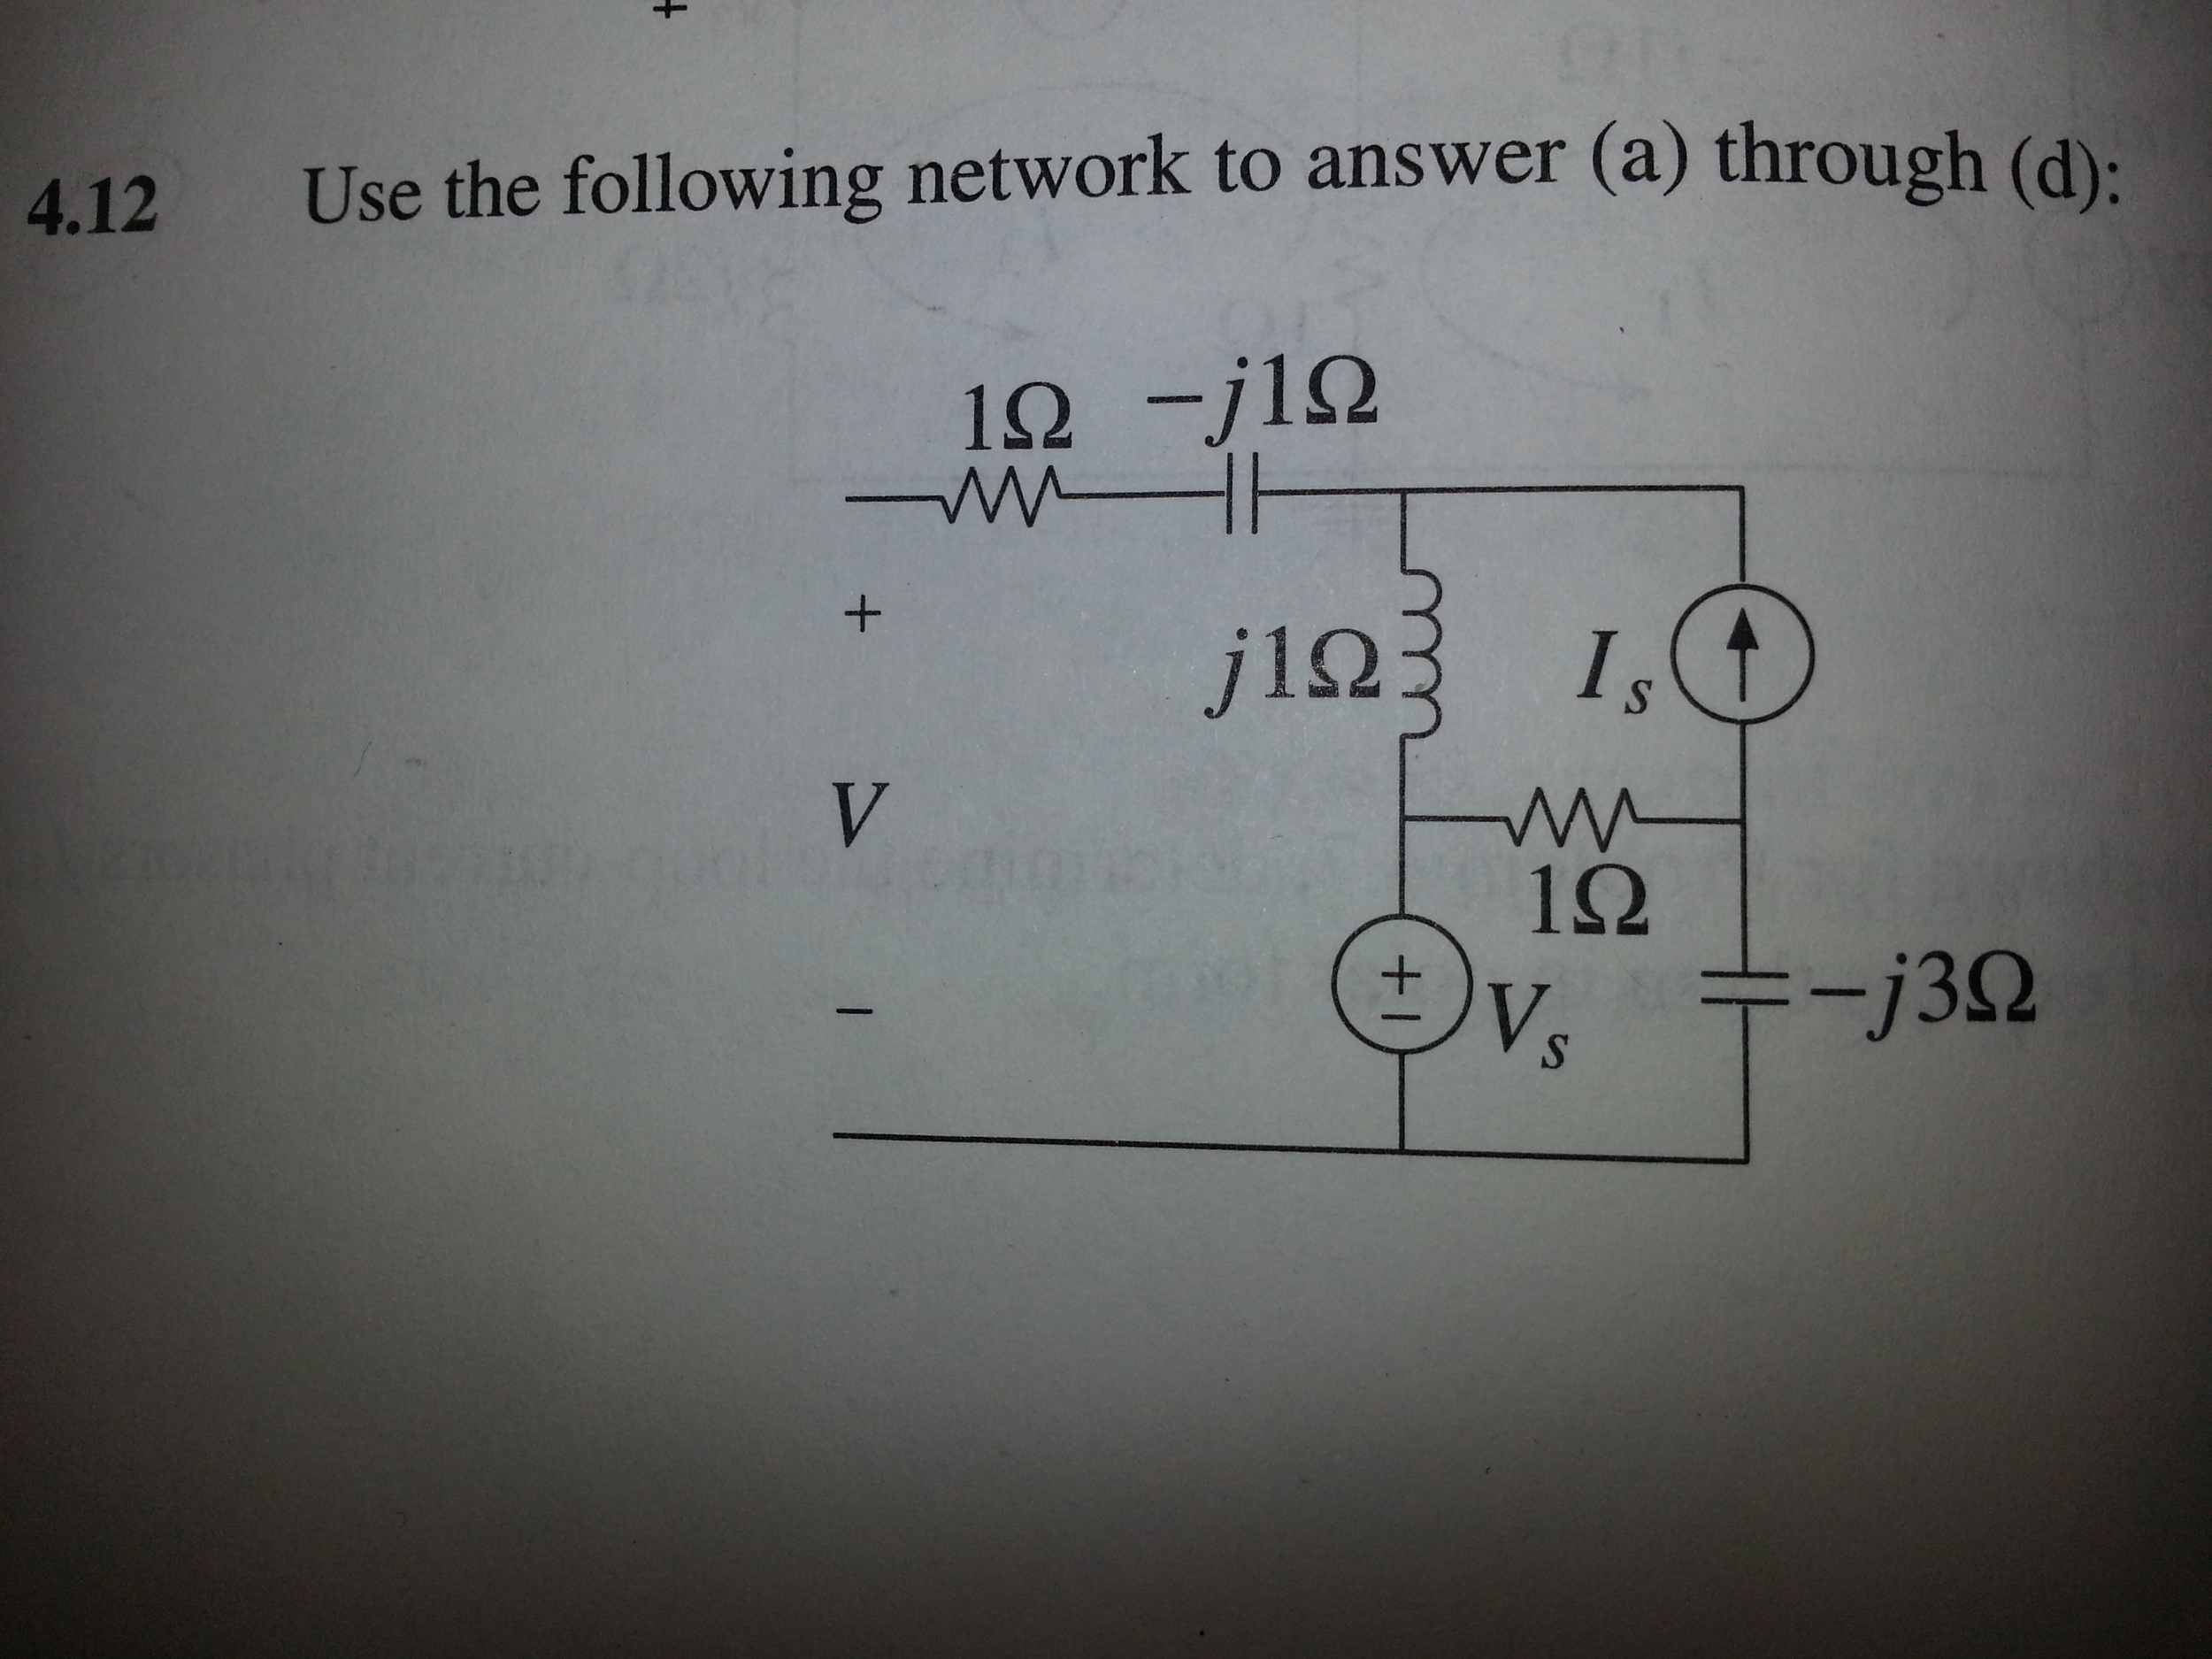 What is the phasor V when Is=0 ? Wast is the phaso